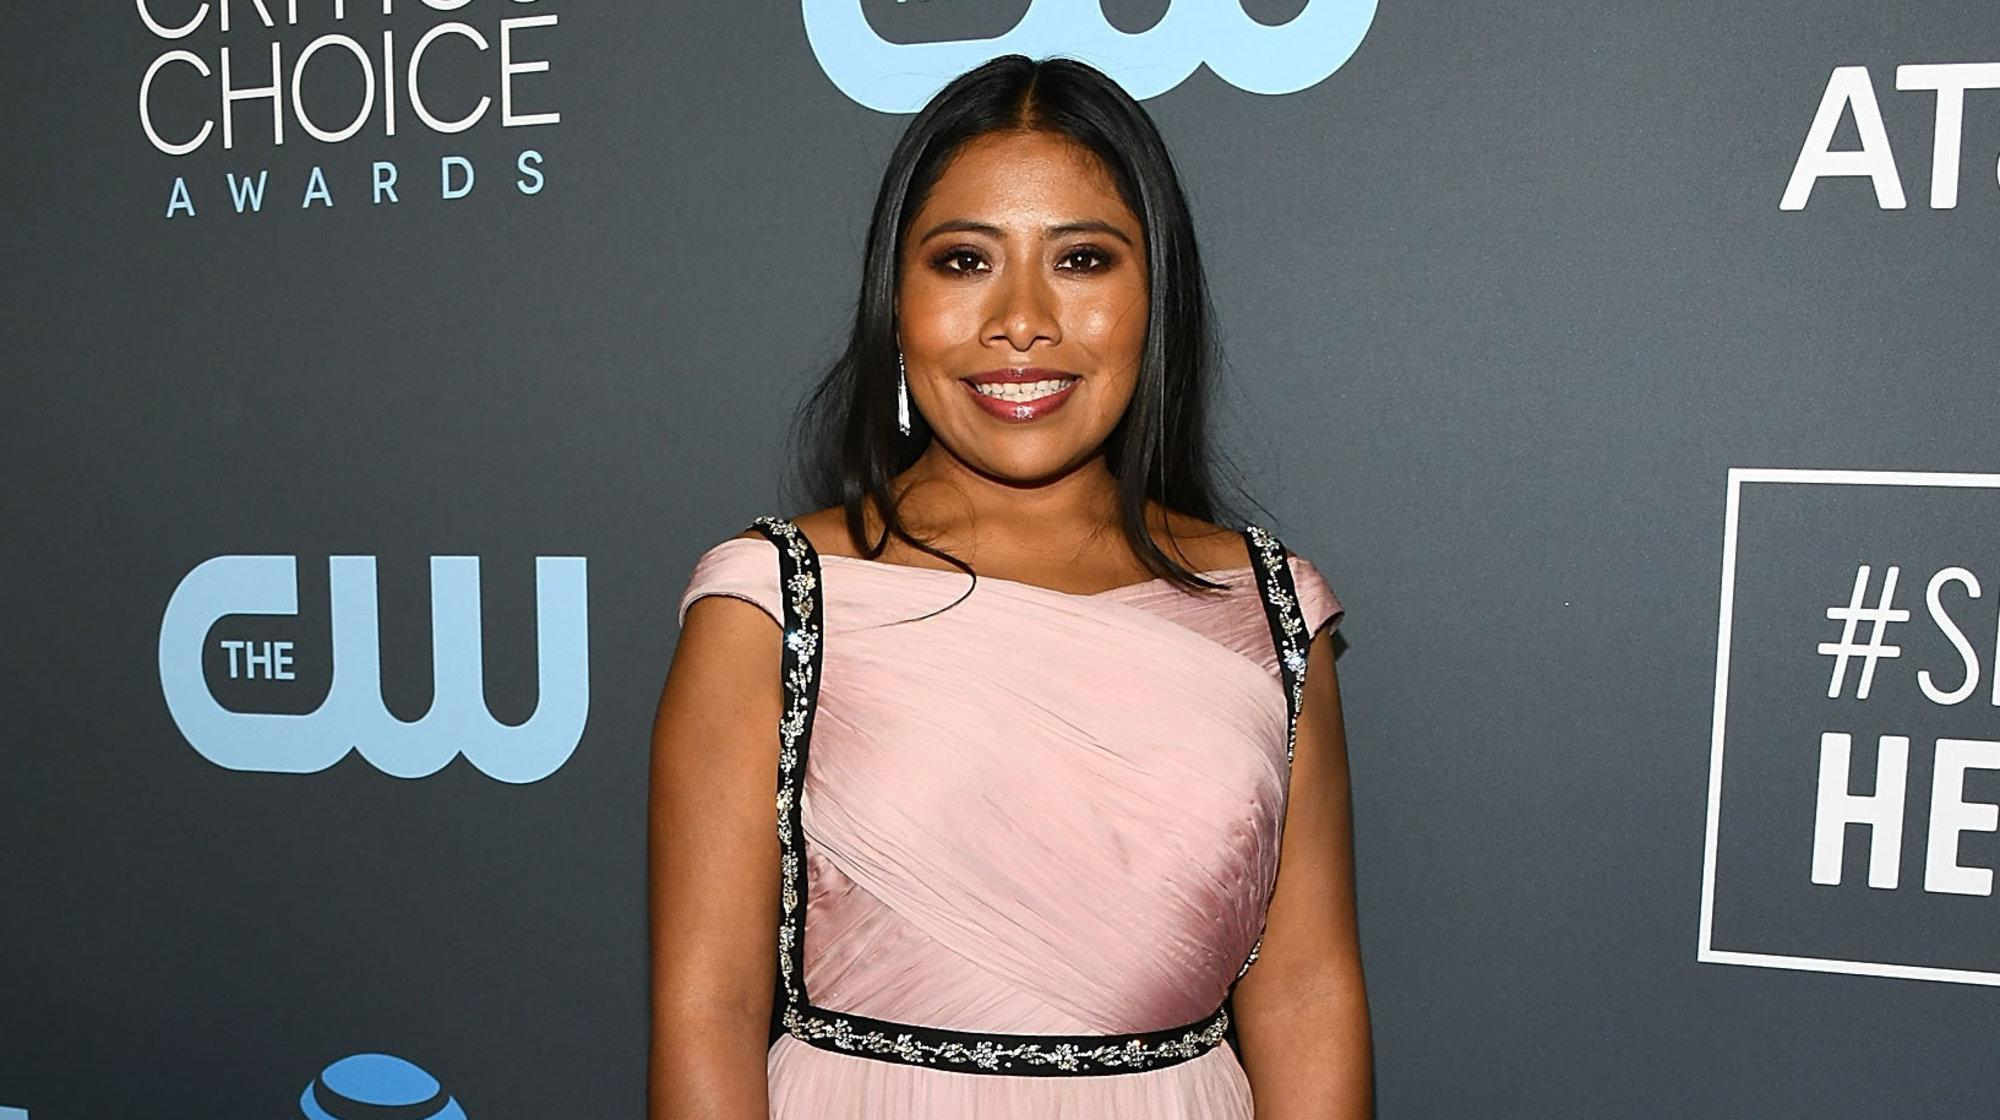 Yalitza Aparicio Of 'Roma' Is First Indigenous Woman Nominated For Best Actress Oscar